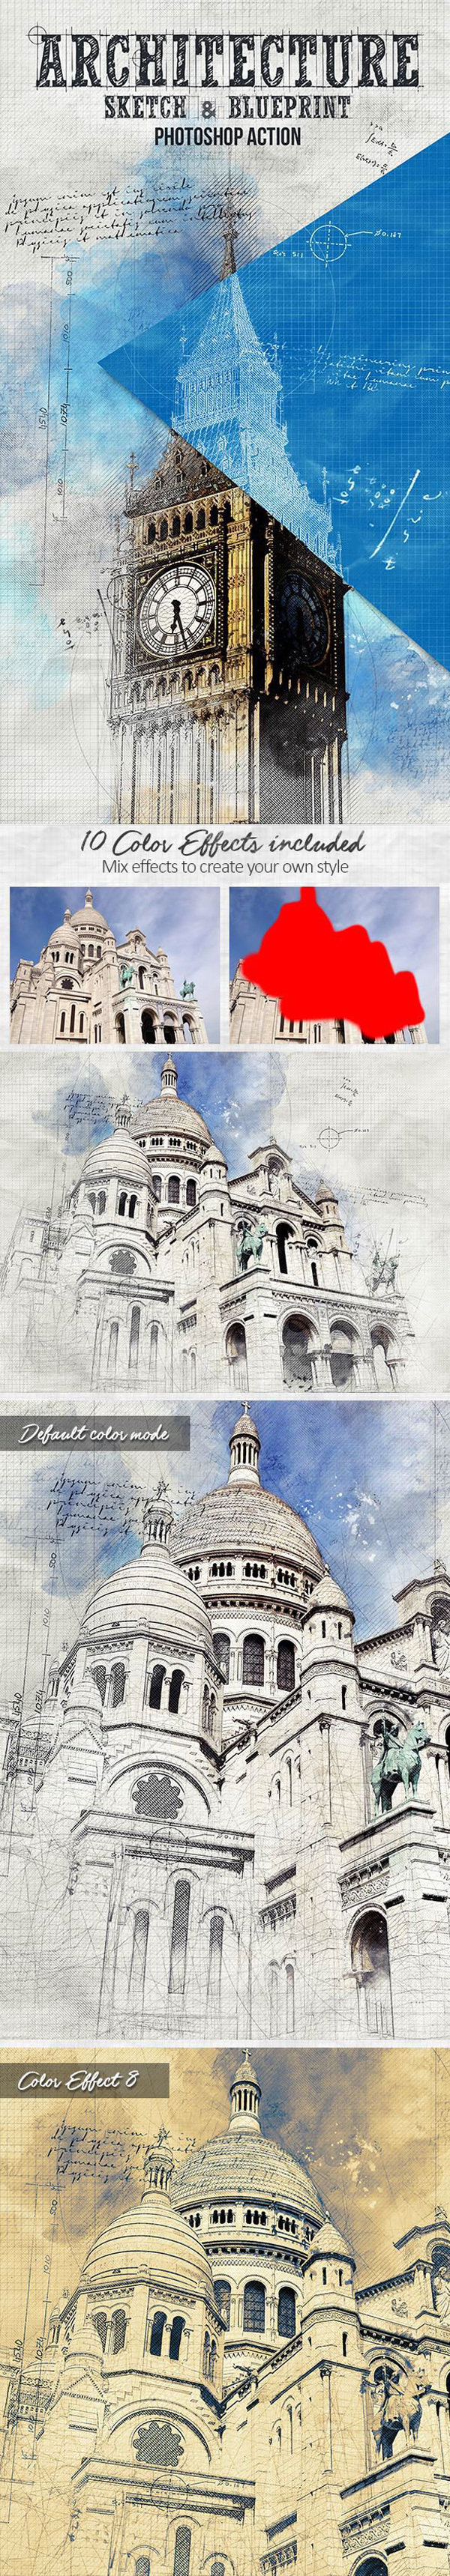 Architecture Sketch and Blueprint Photoshop Action